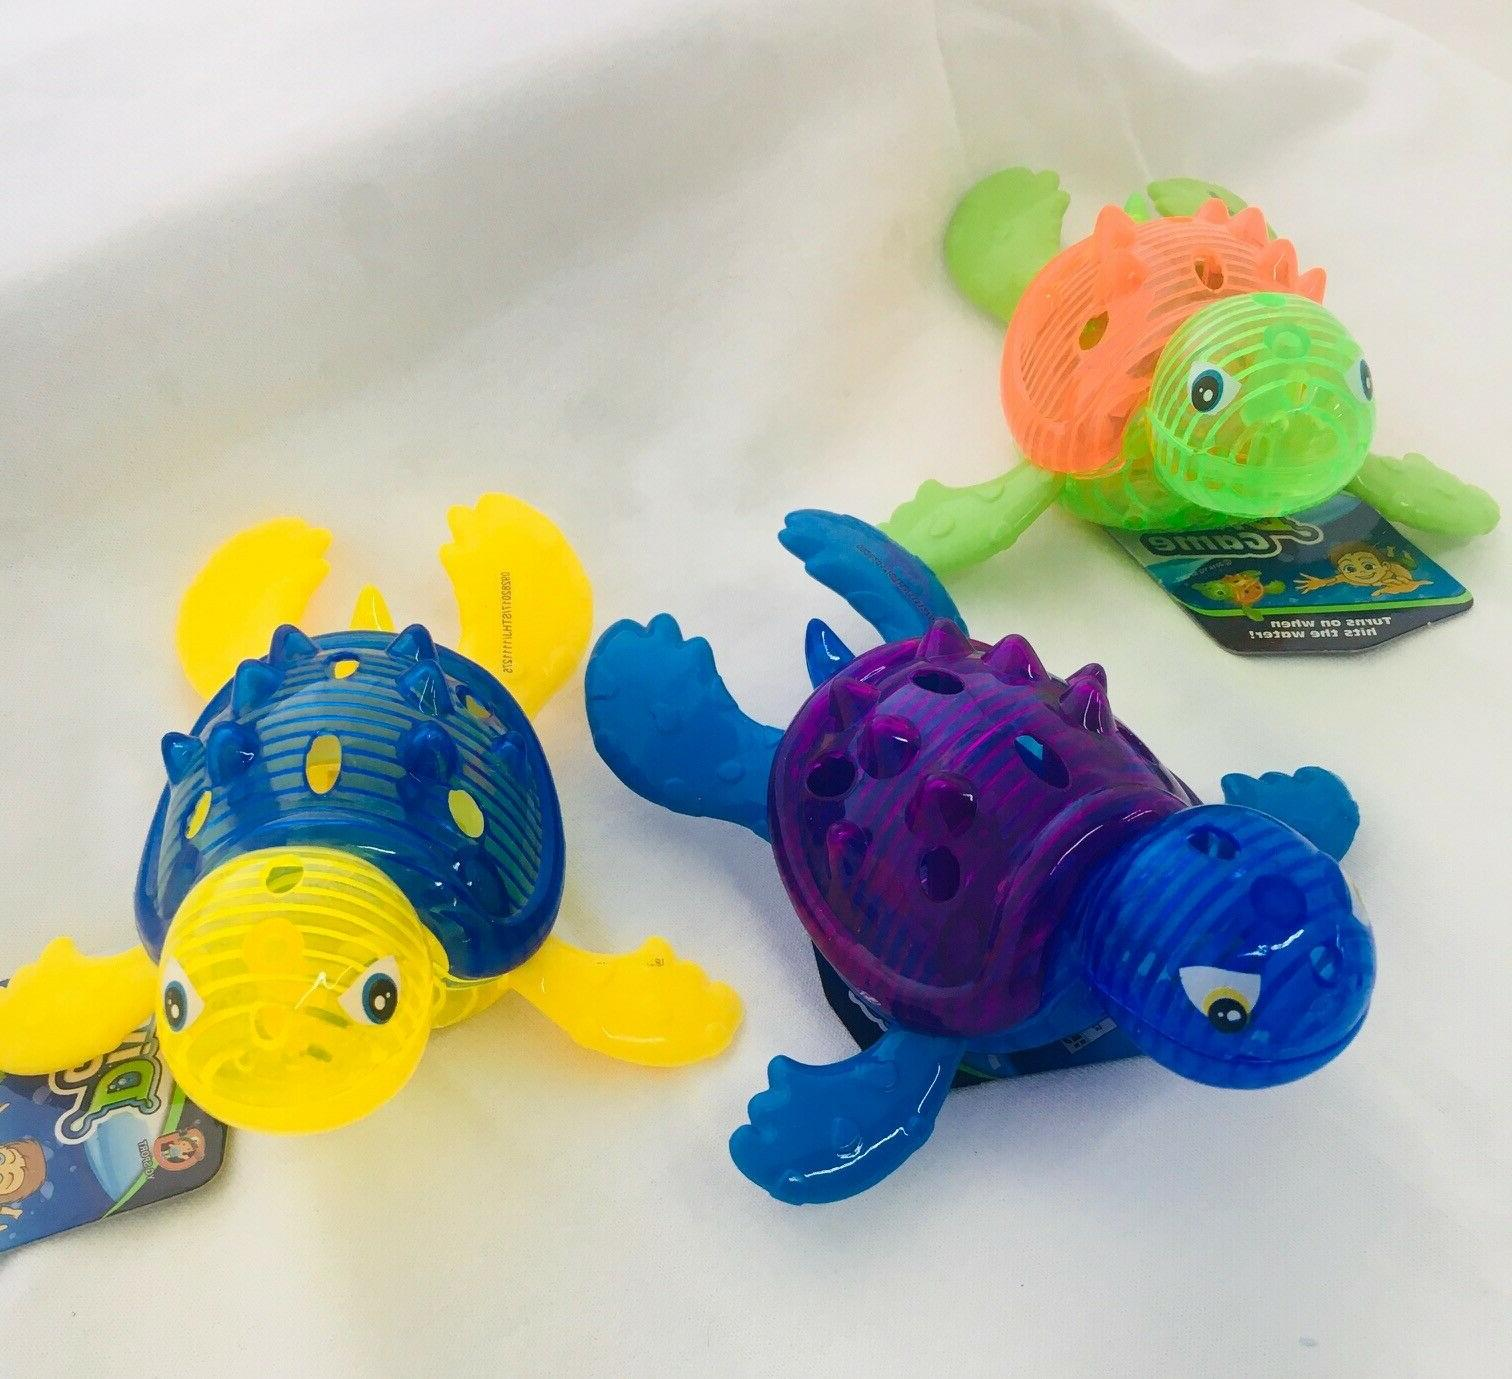 turtle dive toy dive game dolphinturtles lights